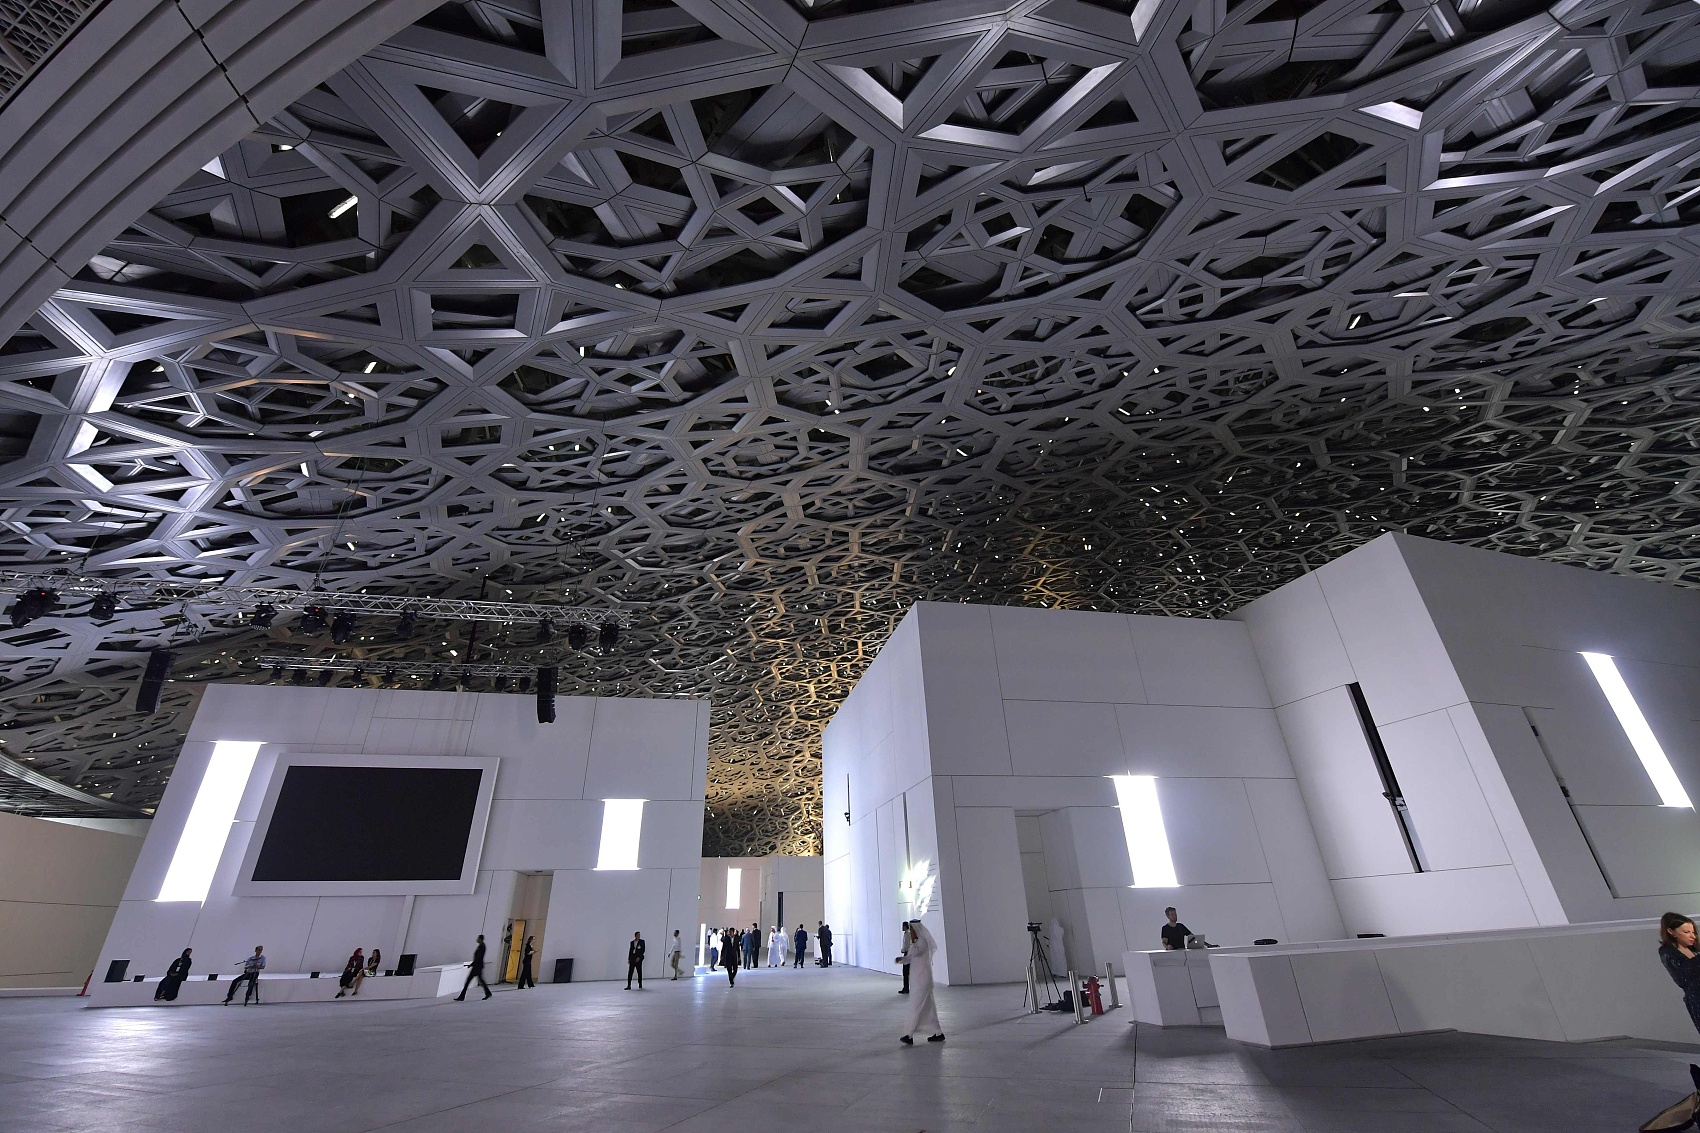 Louvre Abu Dhabi opens to public with plenty of arts masterpieces